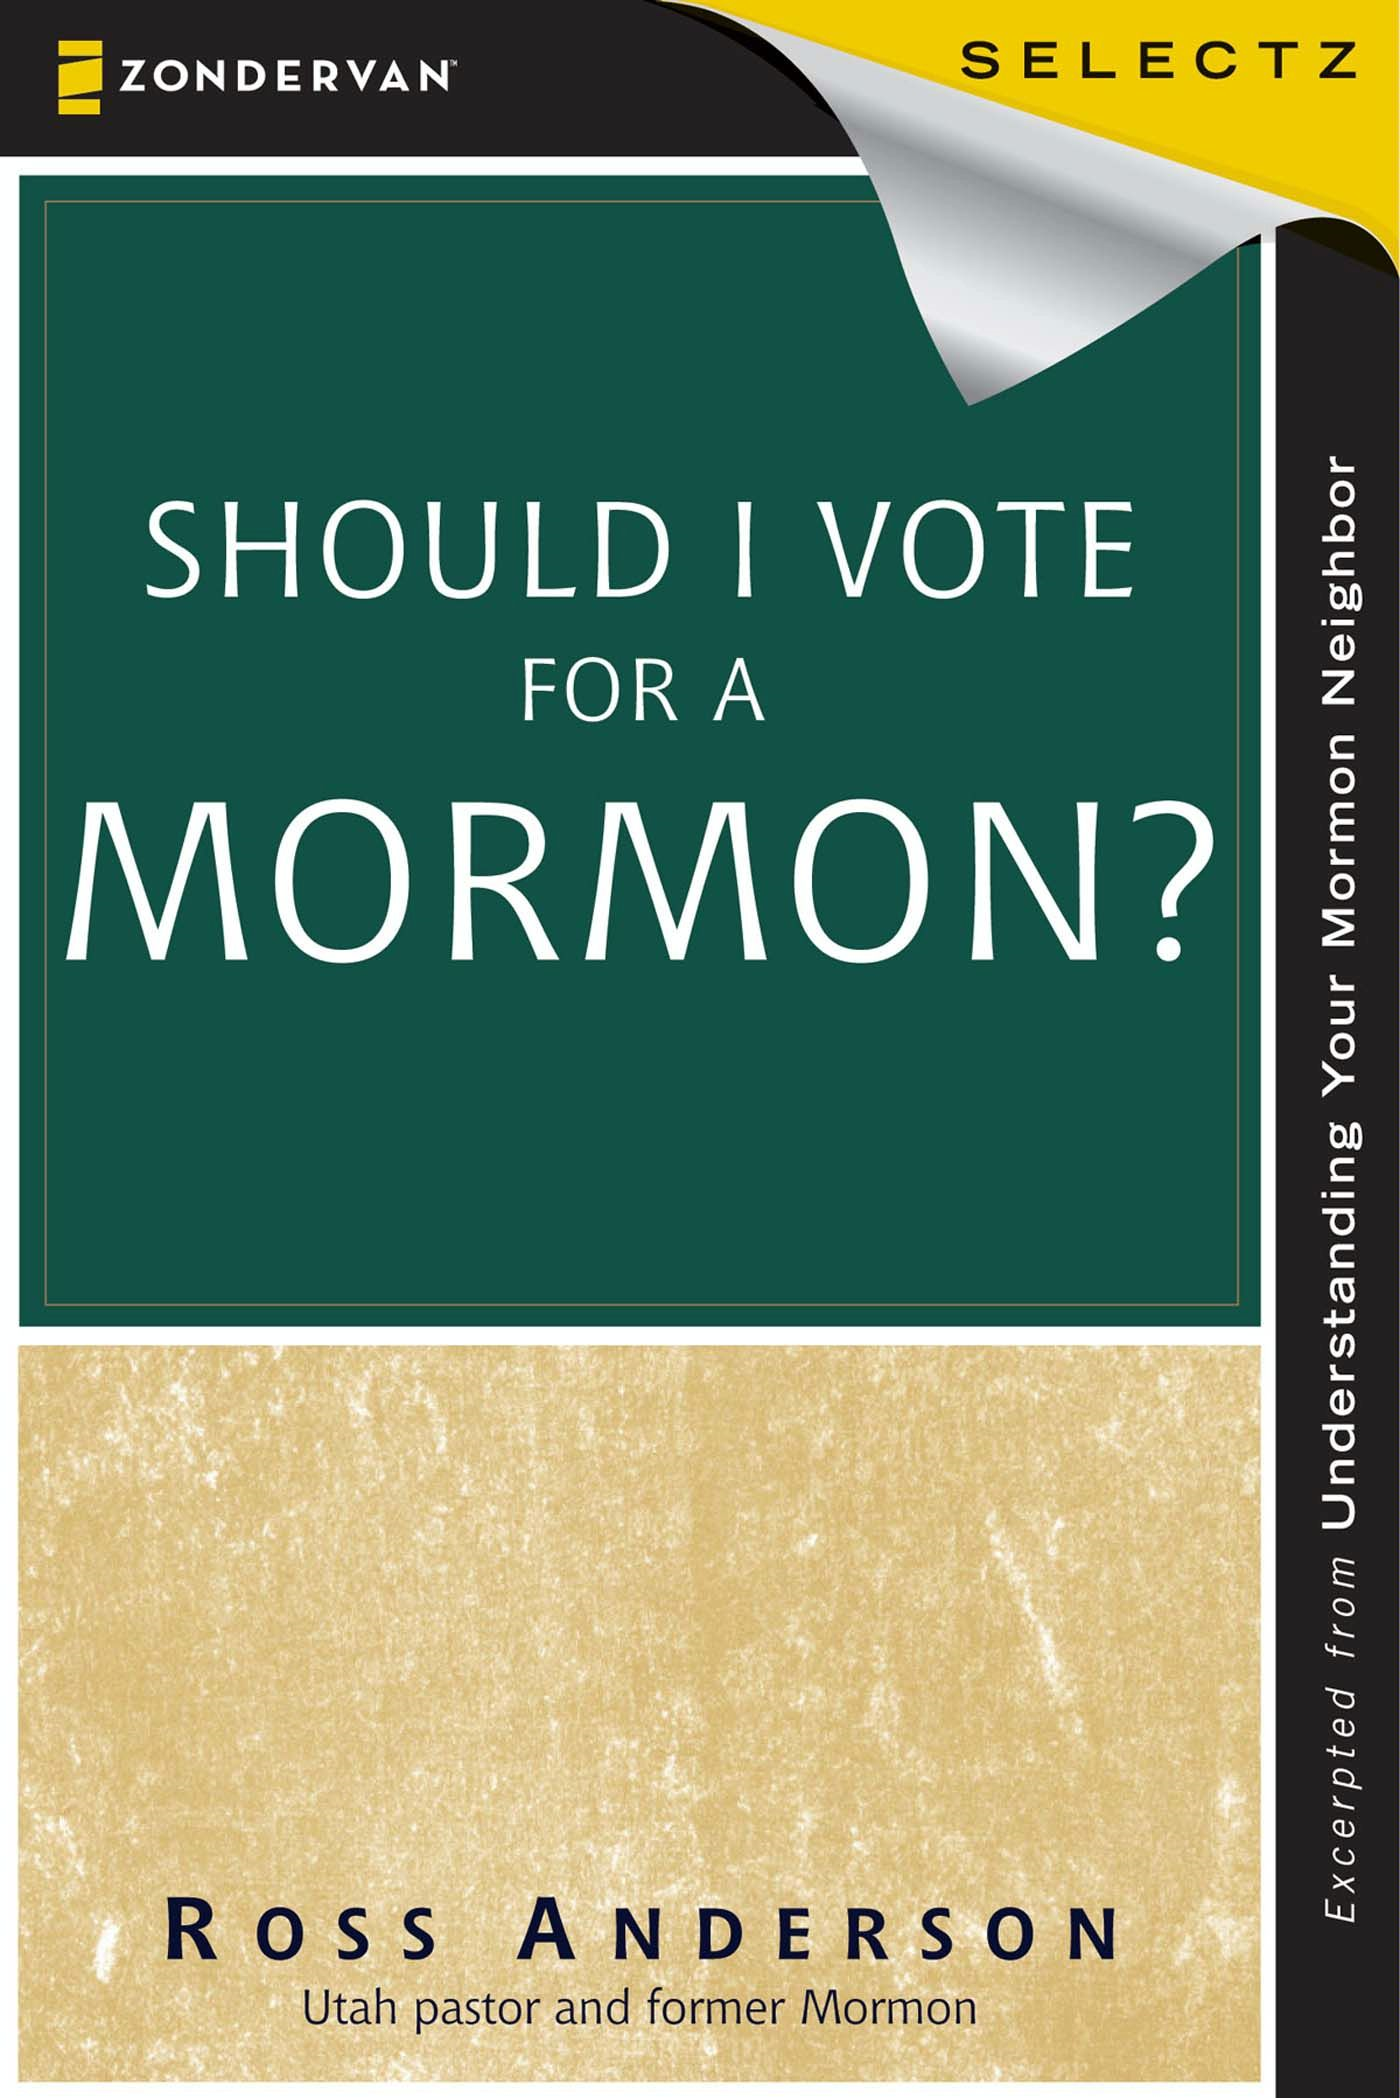 Should I Vote for a Mormon?